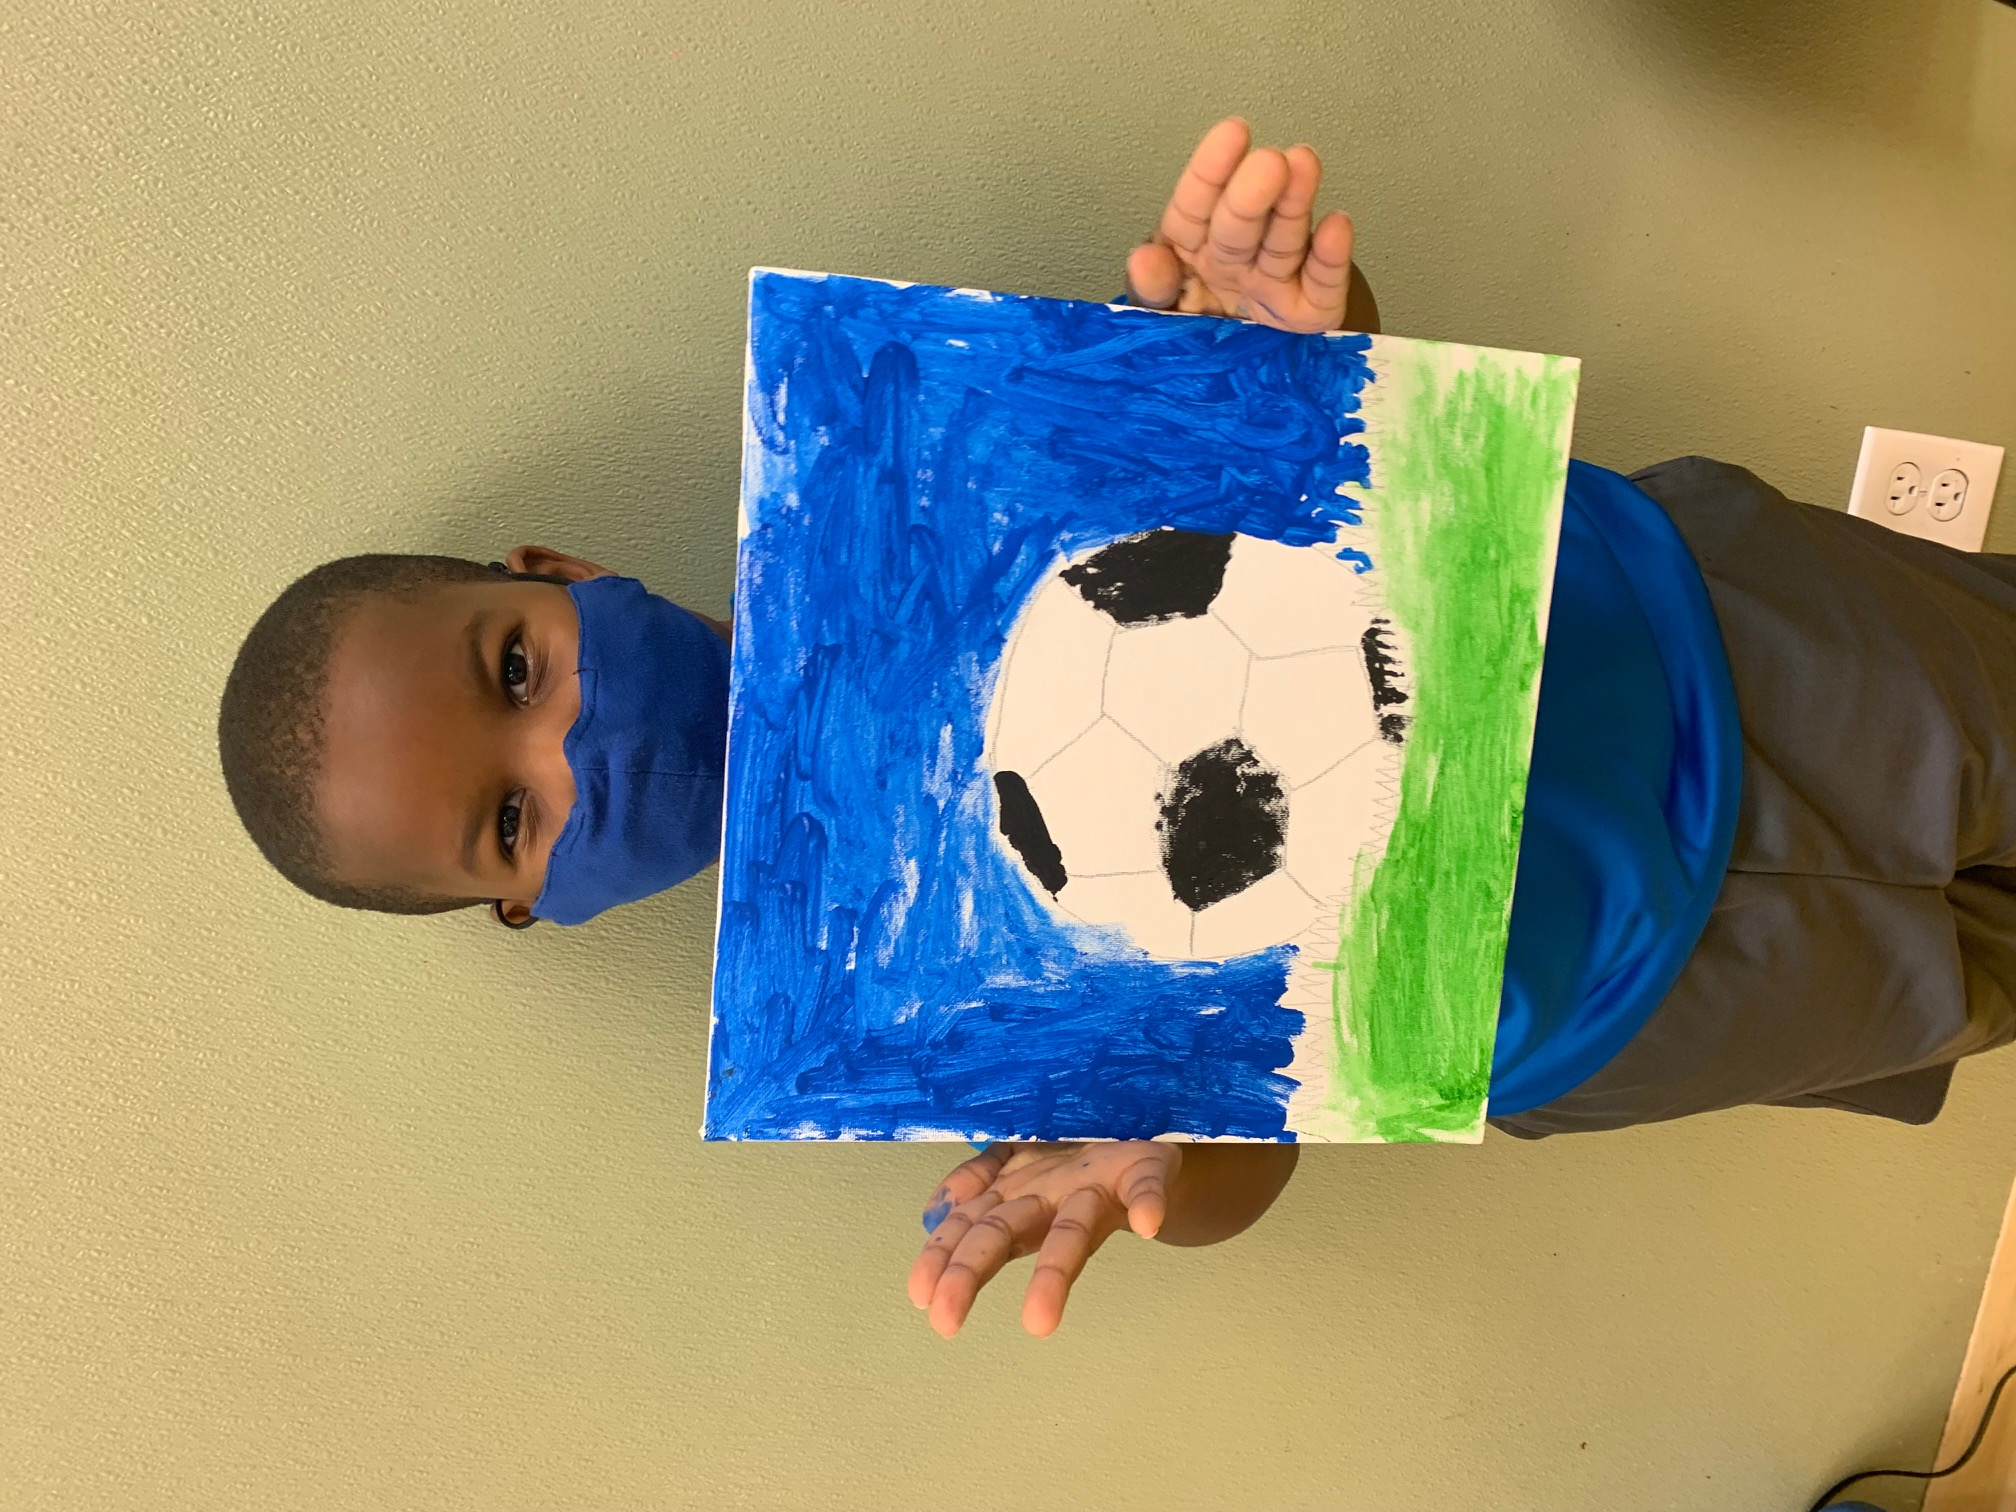 Soccerball painting Image number 10